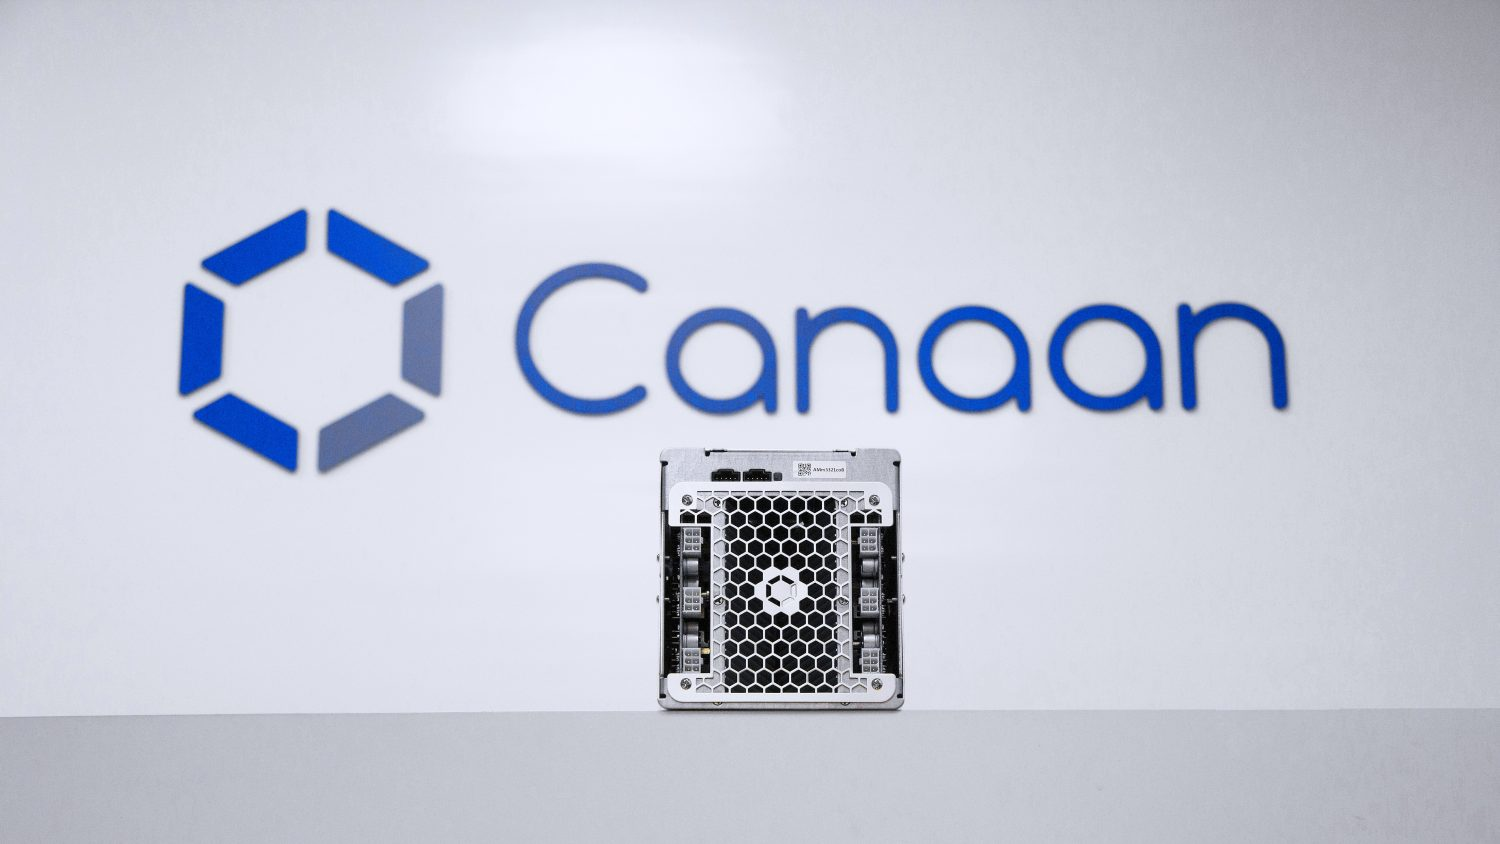 Canaan's ASIC Business Bound for Growth